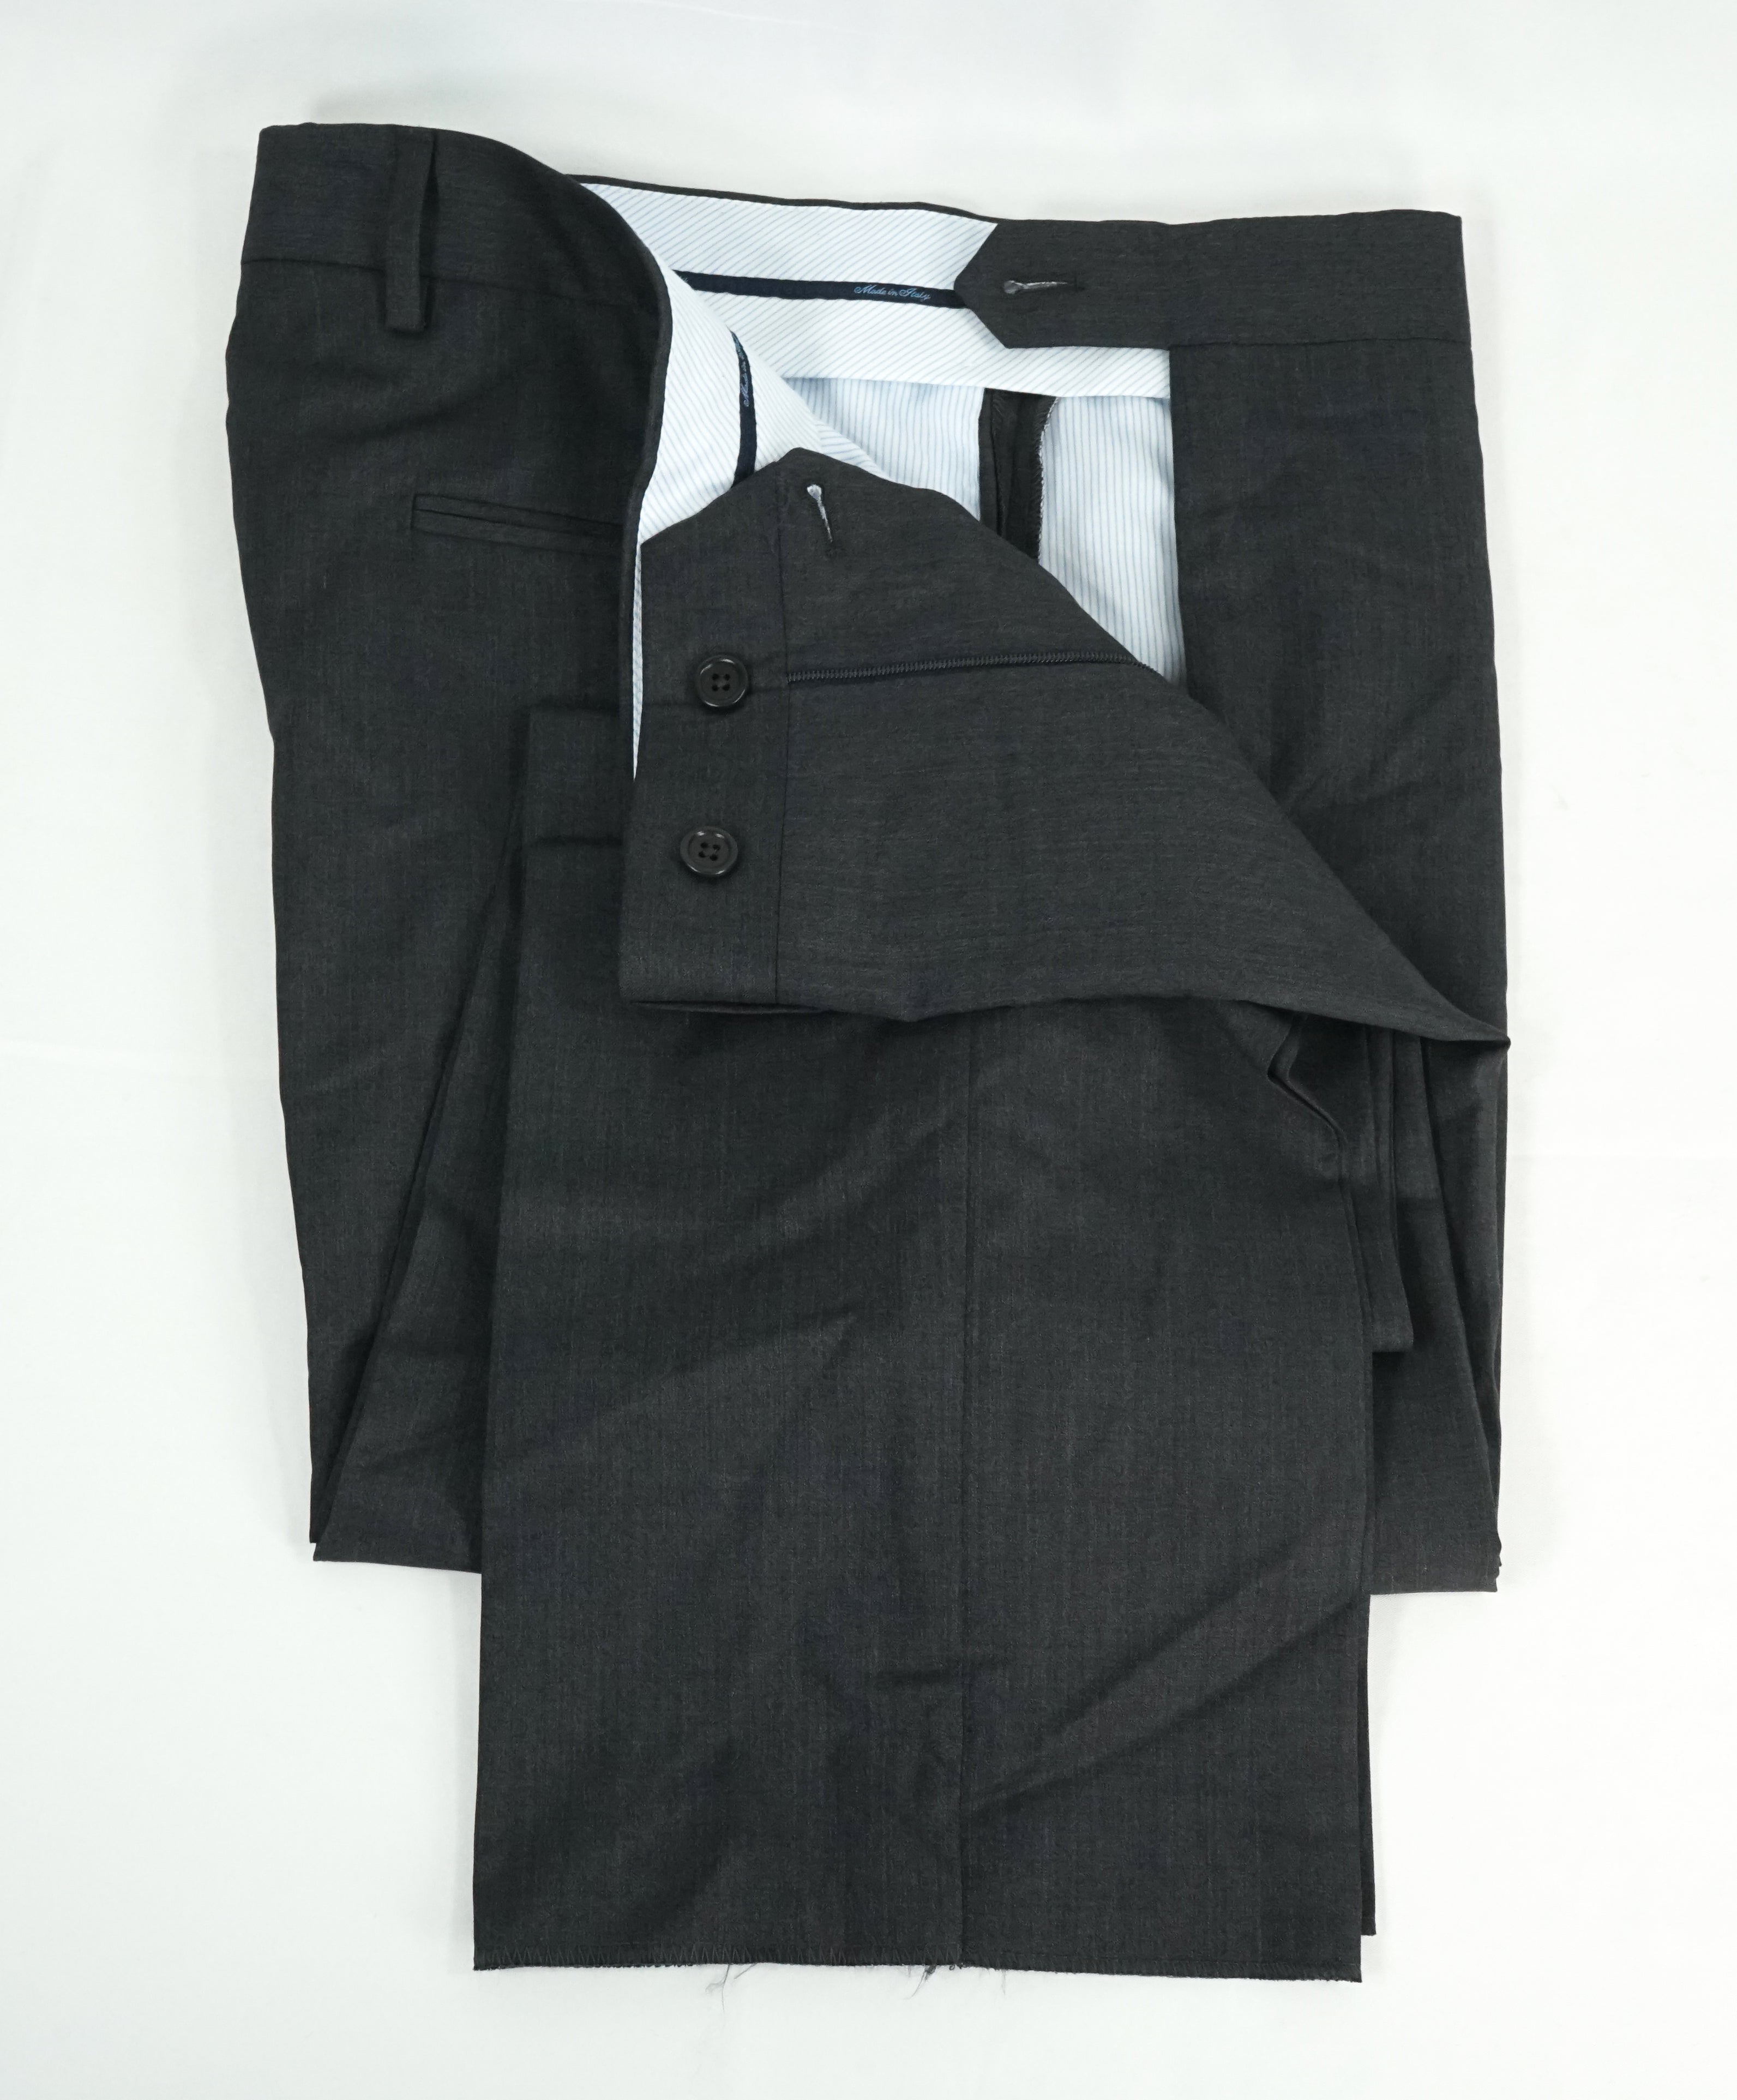 SAKS FIFTH AVE - Charcoal Wool & Silk MADE IN ITALY Flat Front Dress Pants -  32W